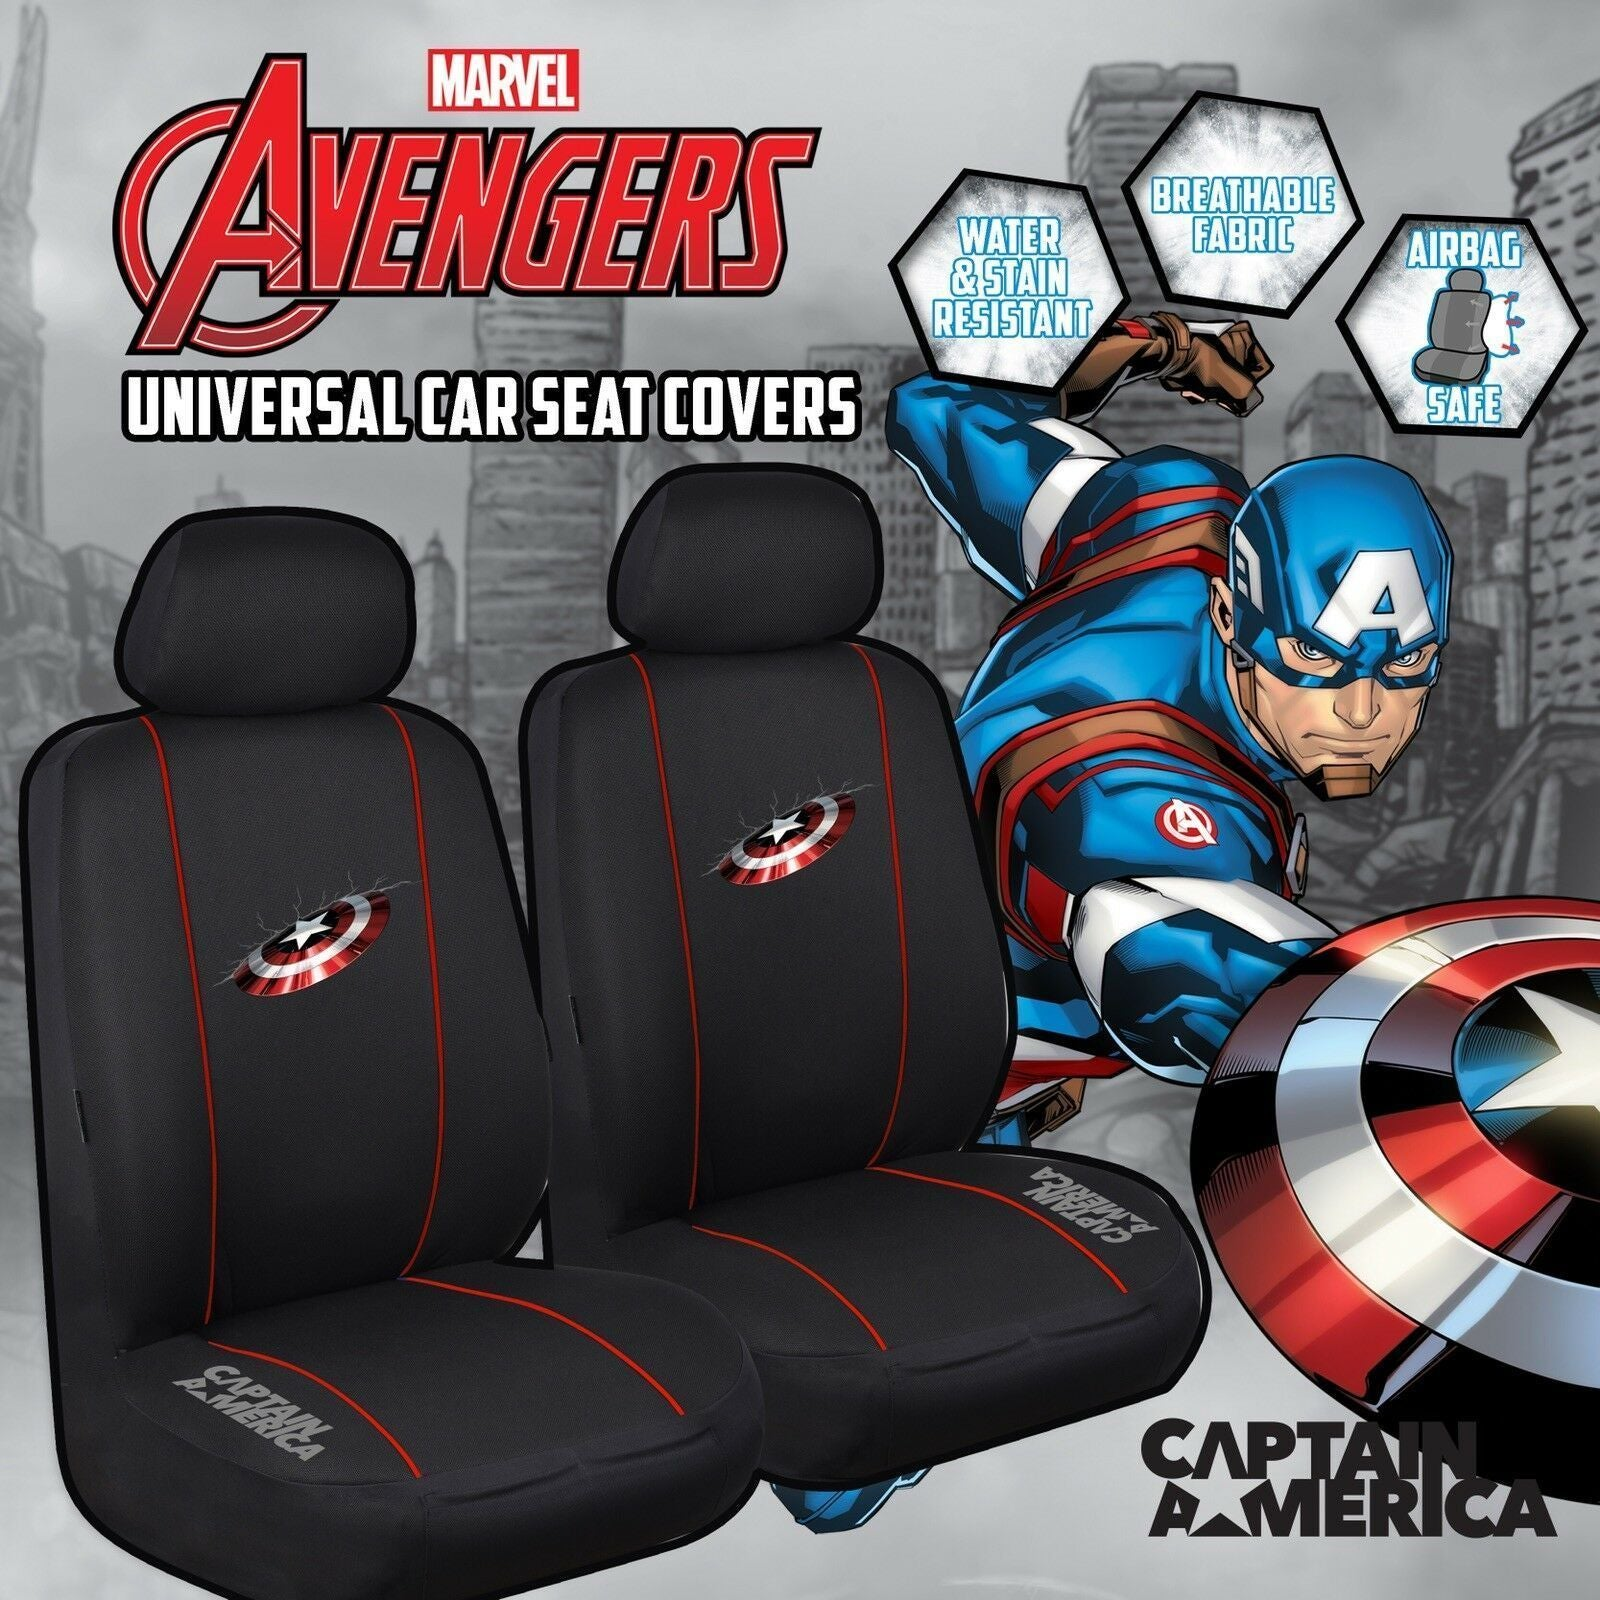 MARVEL AVENGERS Universal 30/35 Car Seat Cover - CAPTAIN AMERICA